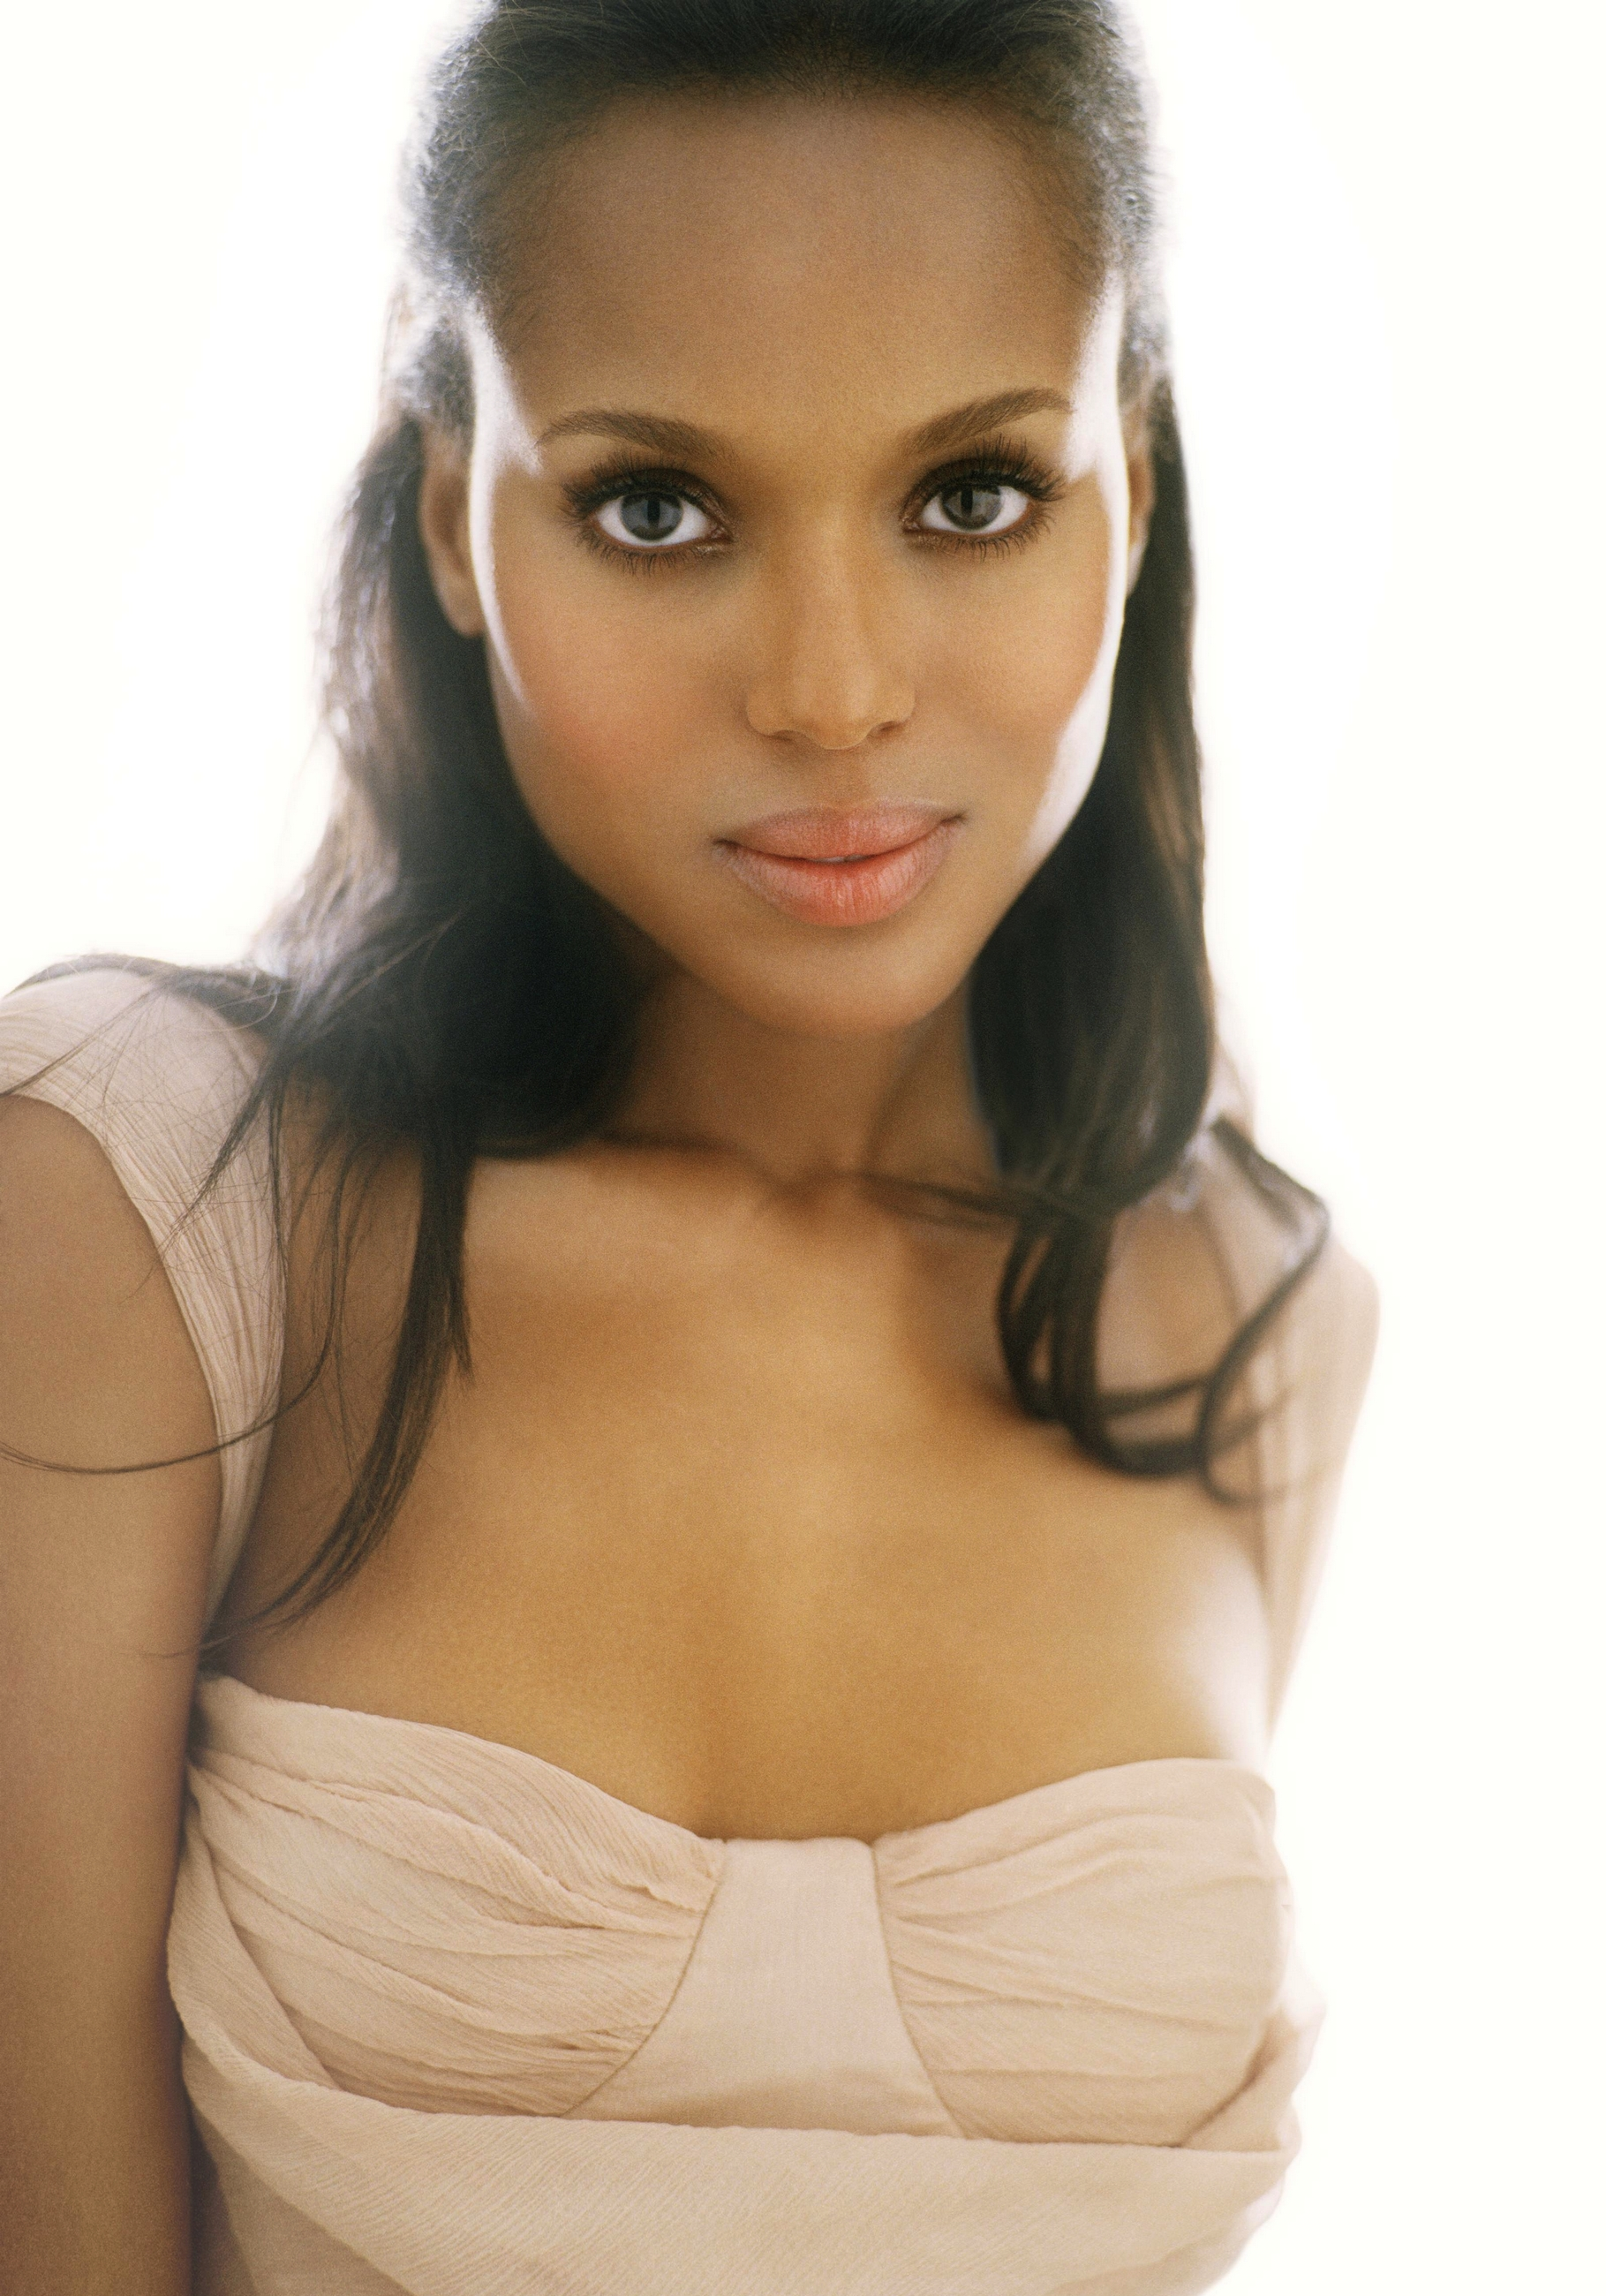 kerry washington: